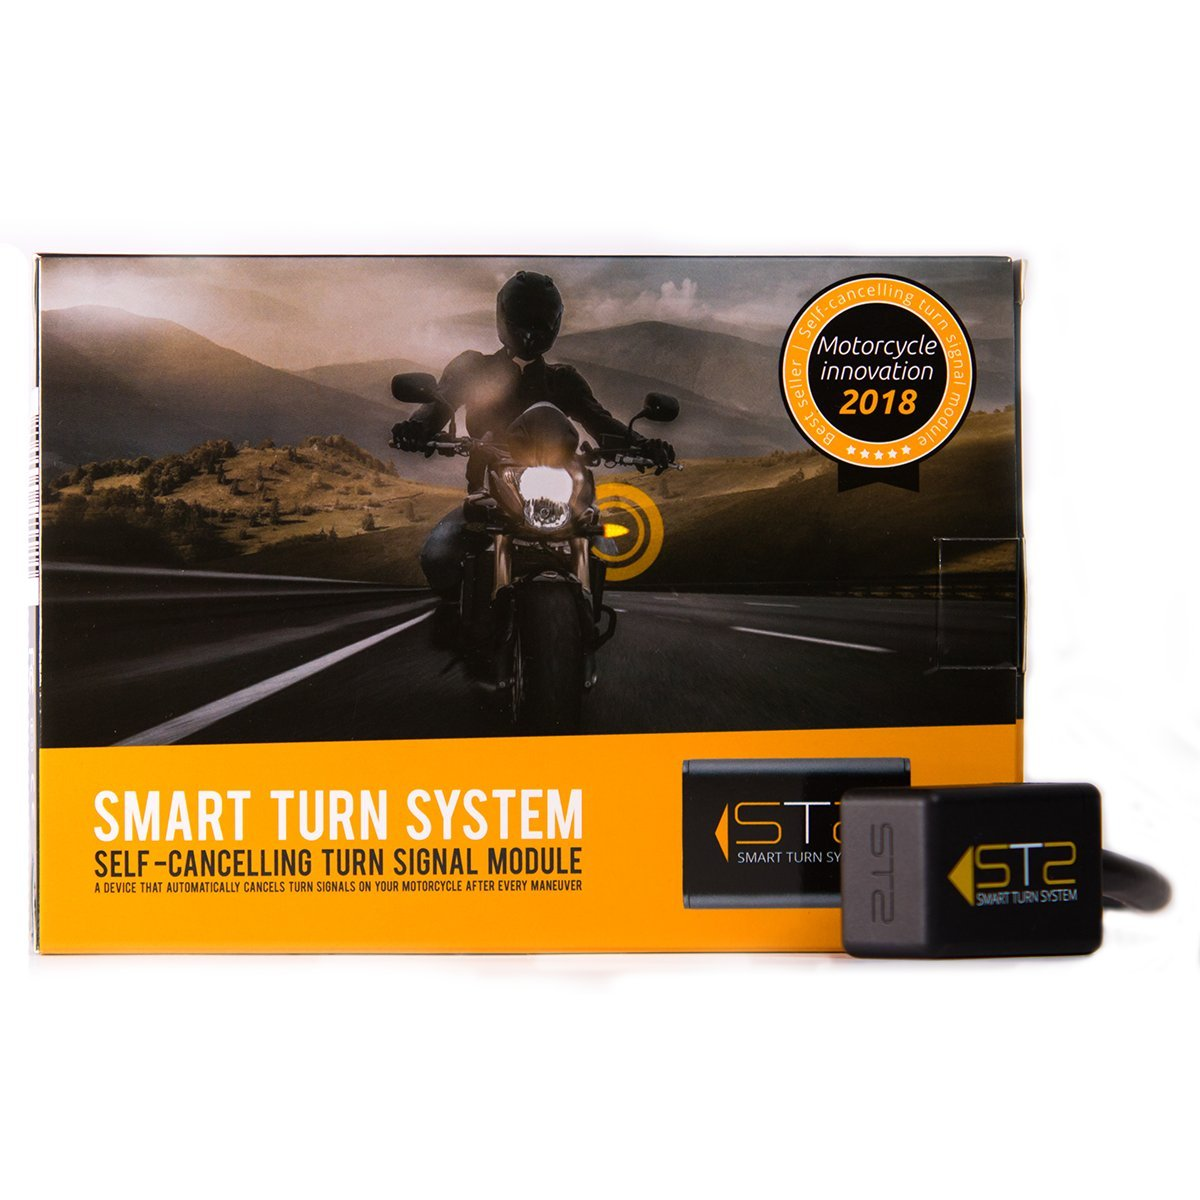 Amazon.com: Smart Turn System - STS, automatic turn signal cancelling  module, self cancelling system: Automotive